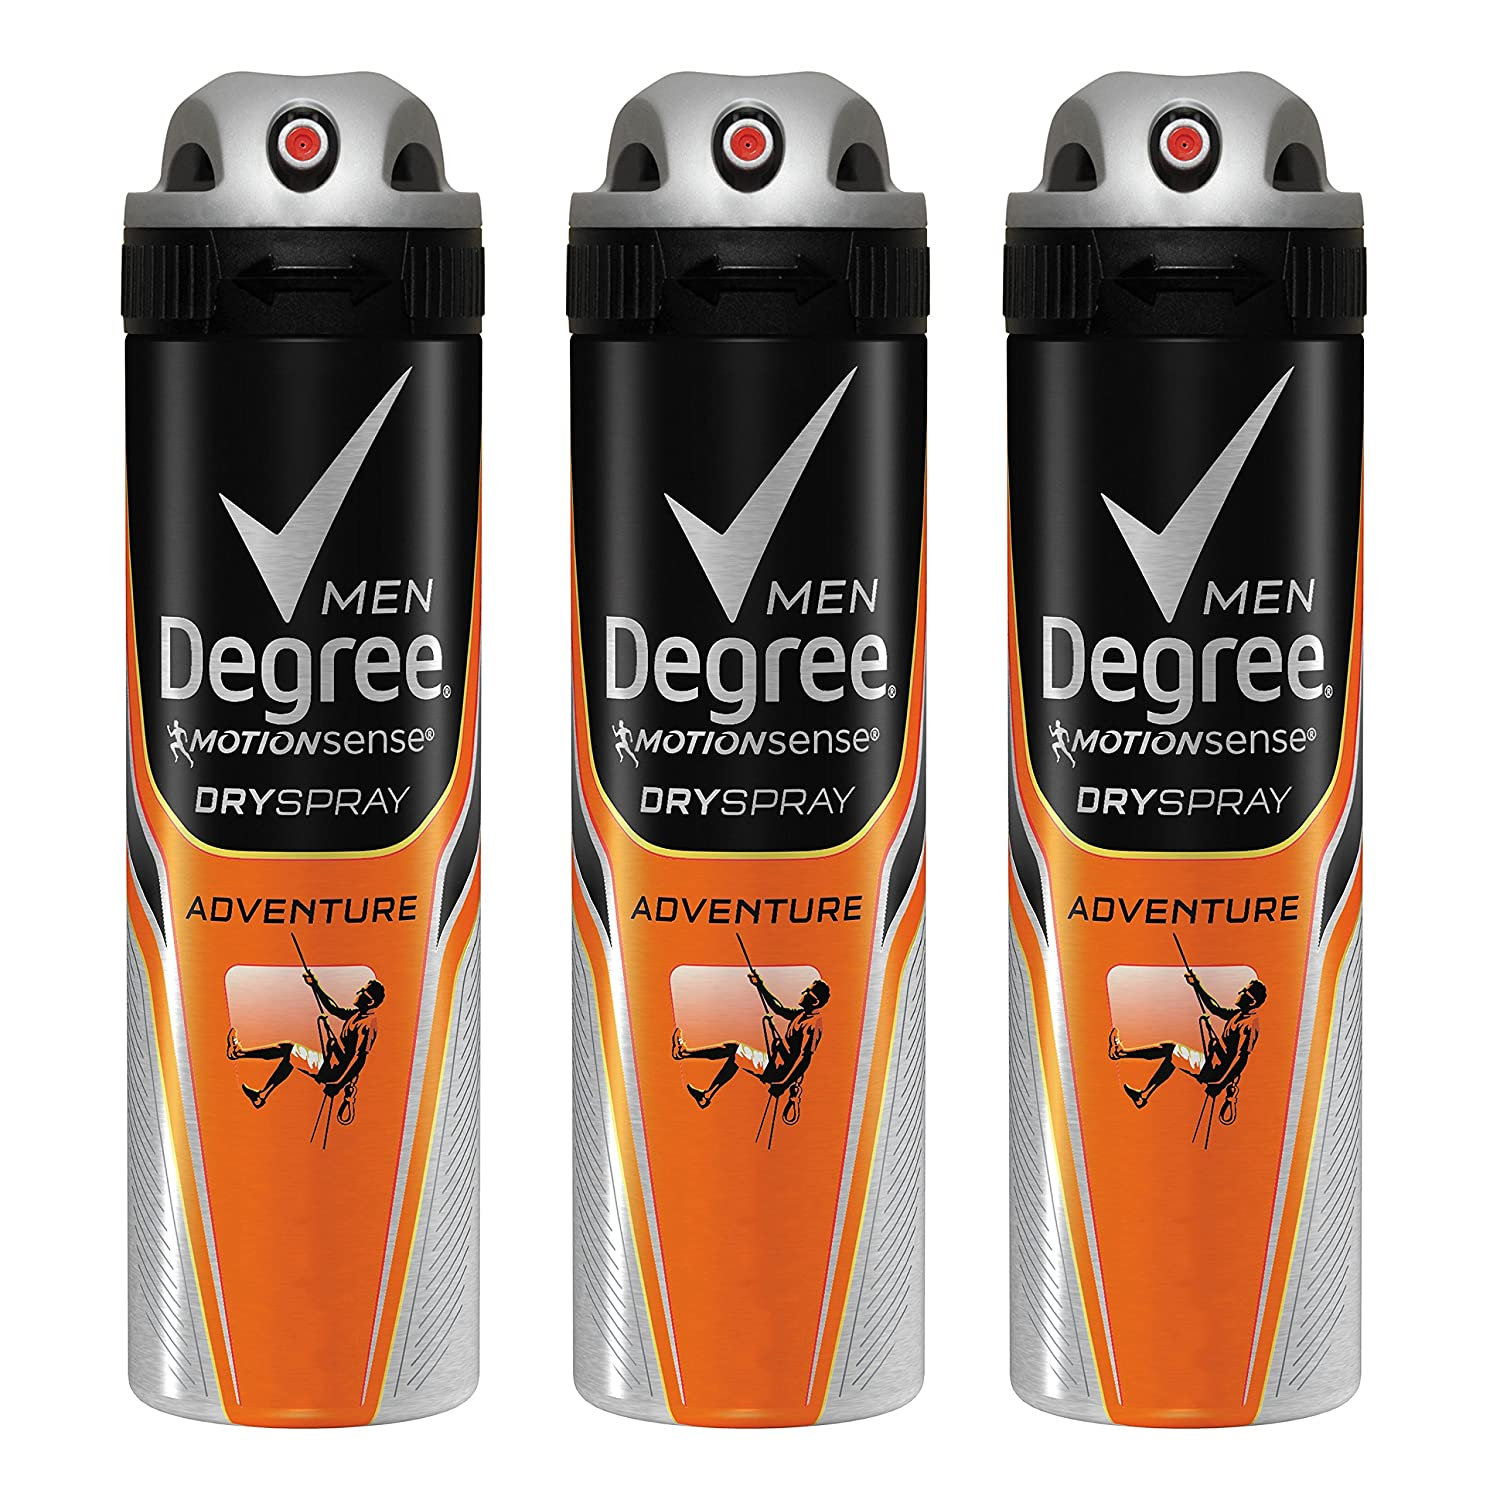 Degree Men MotionSense Antiperspirant Deodorant Dry Spray, Adventure, 3.8 Ounce, Pack of 3